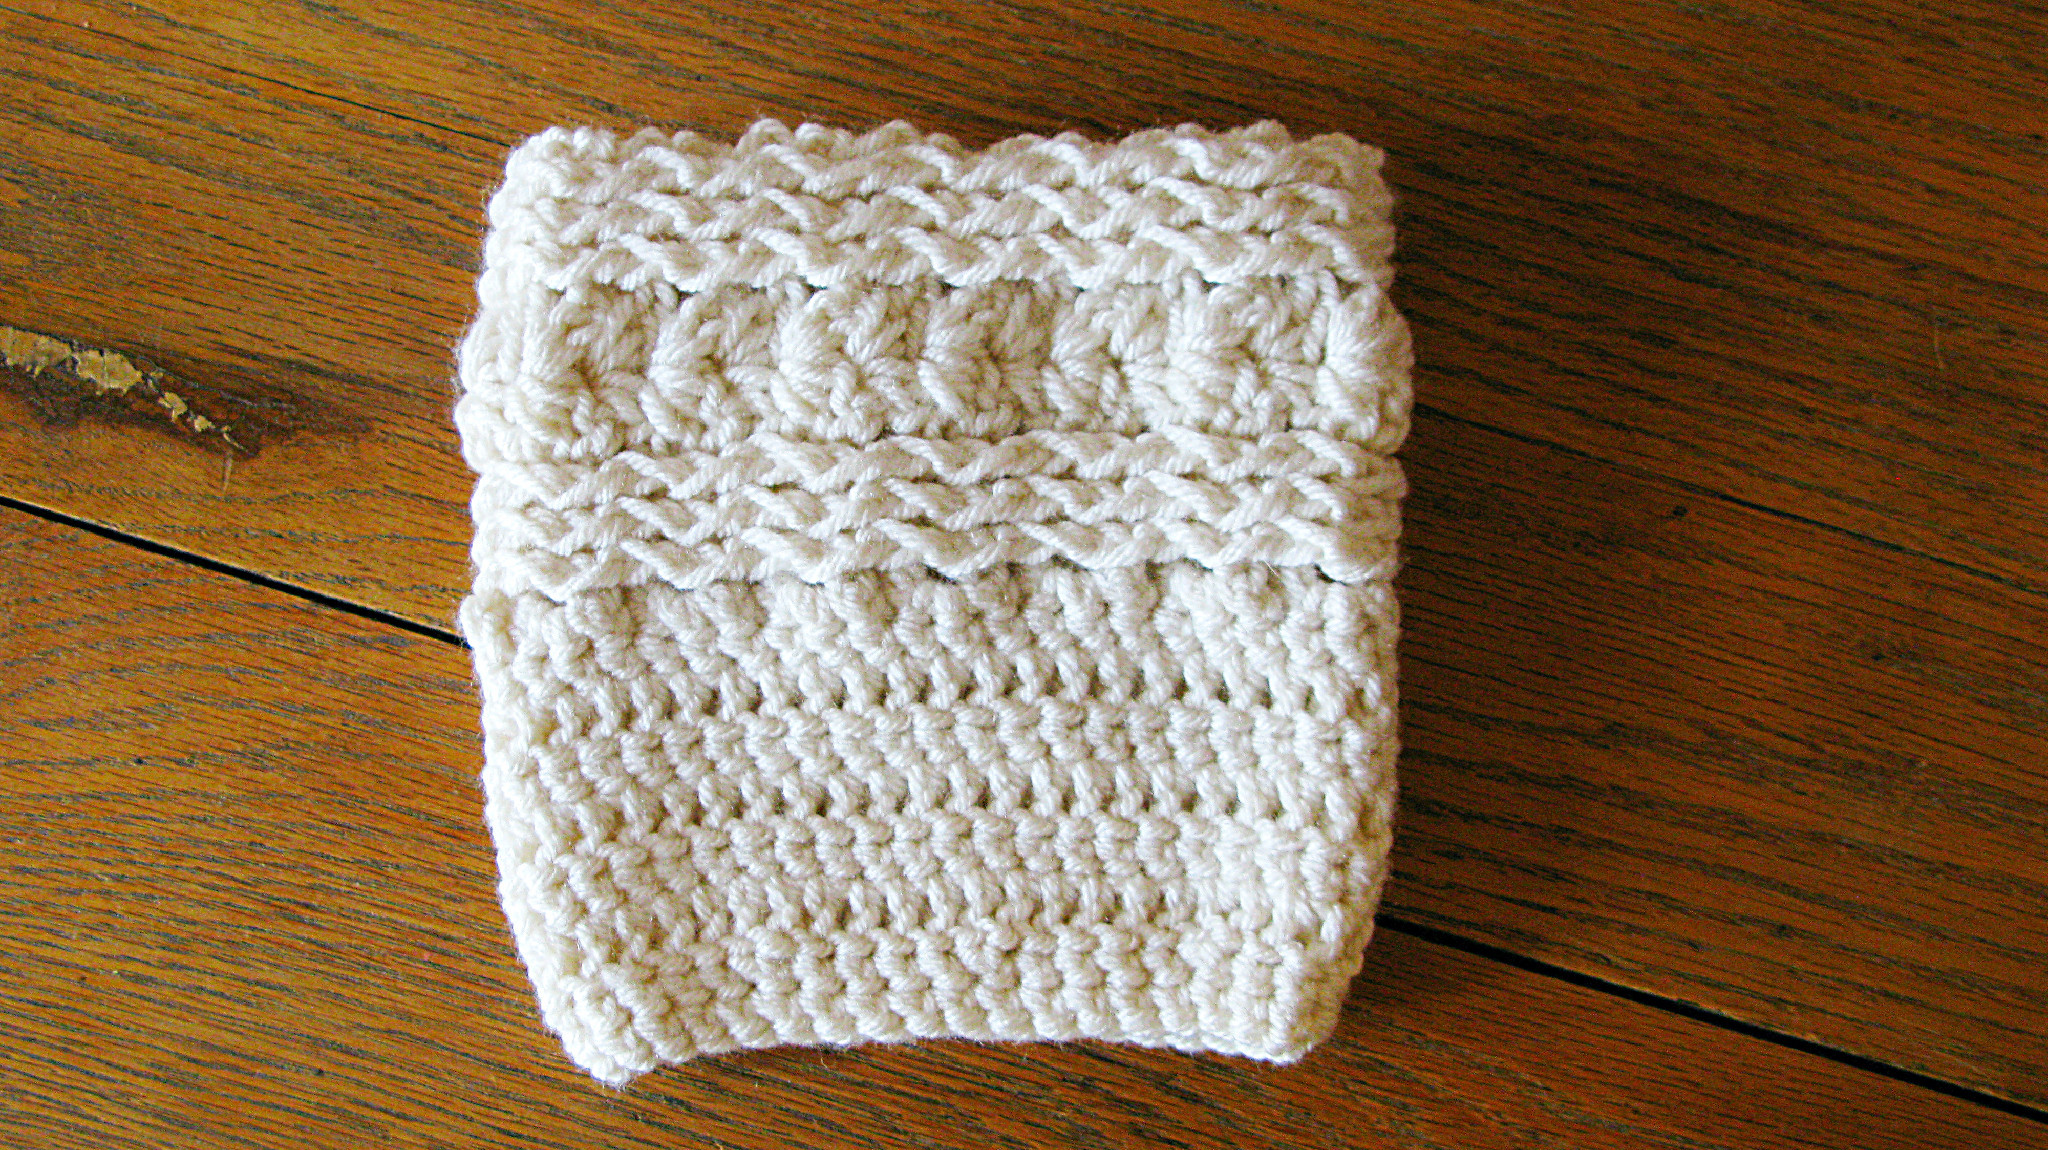 Crochet Boot Cuffs Pattern Lovely the Patterns Keep Ing Elk Studio Handcrafted Of Charming 40 Pics Crochet Boot Cuffs Pattern